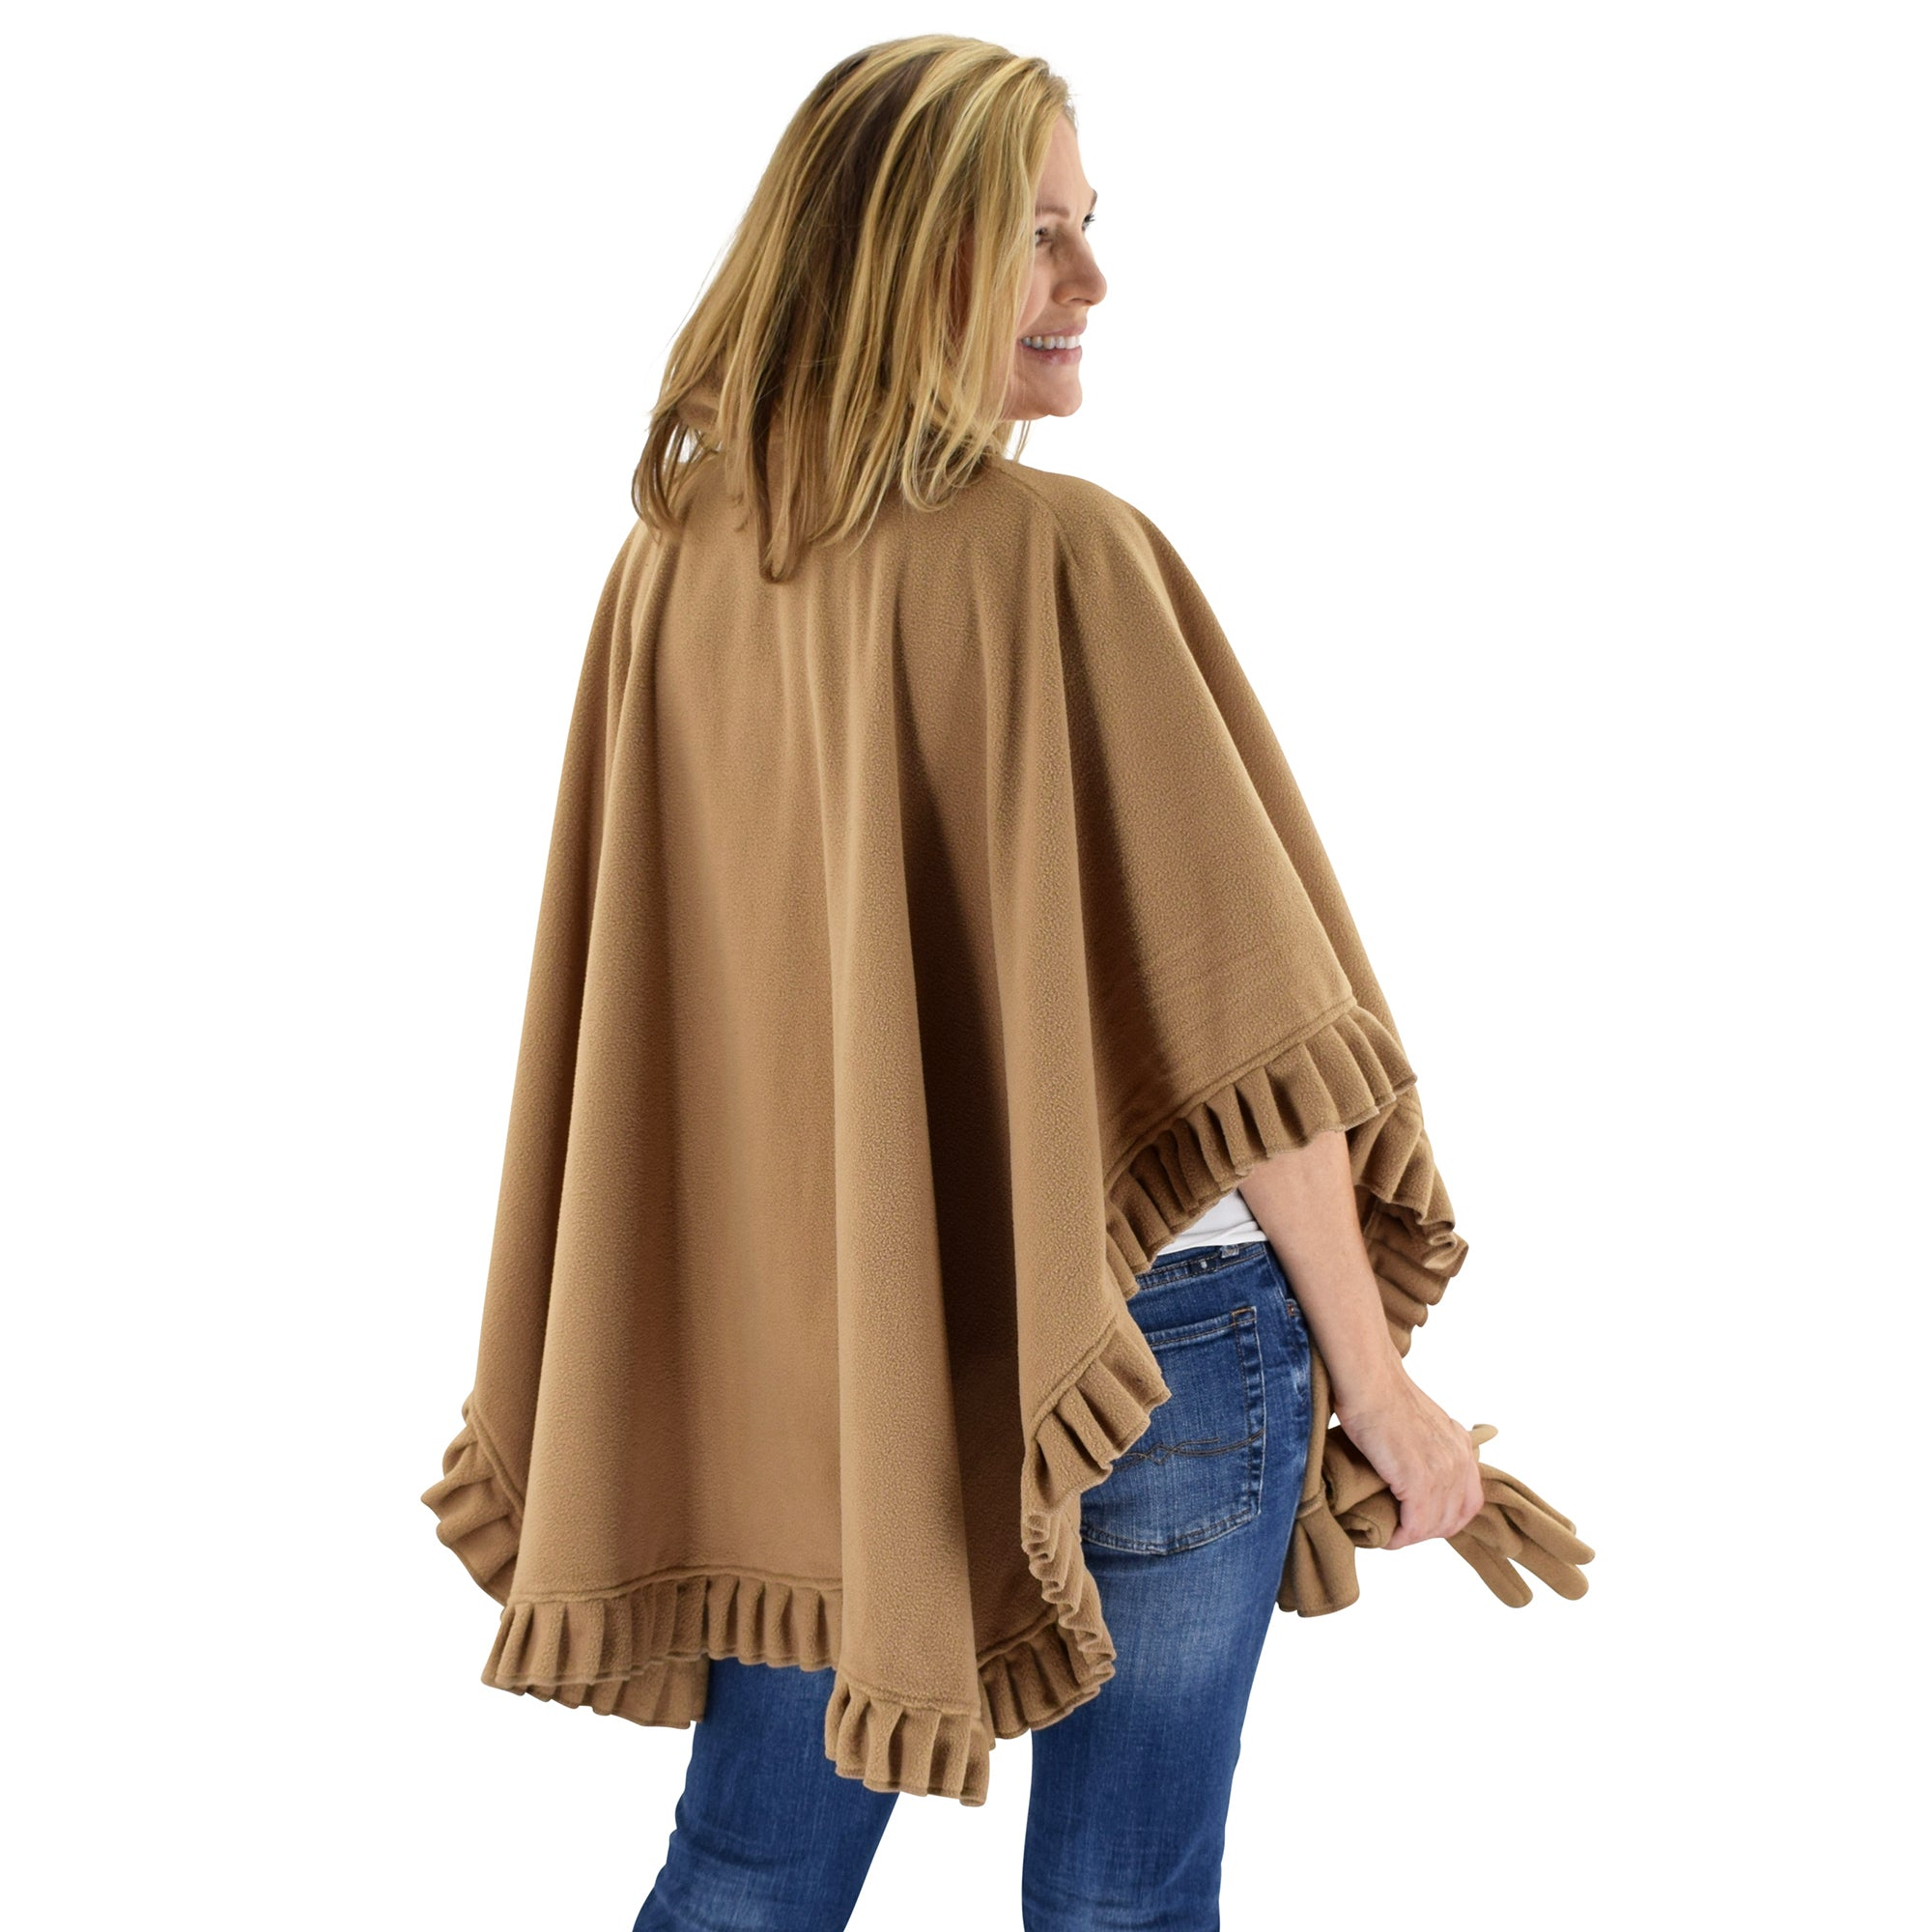 Le Moda Women's Frilled Solid Color Fleece Poncho Shawl with Matching Gloves at Linda Anderson. color_camel